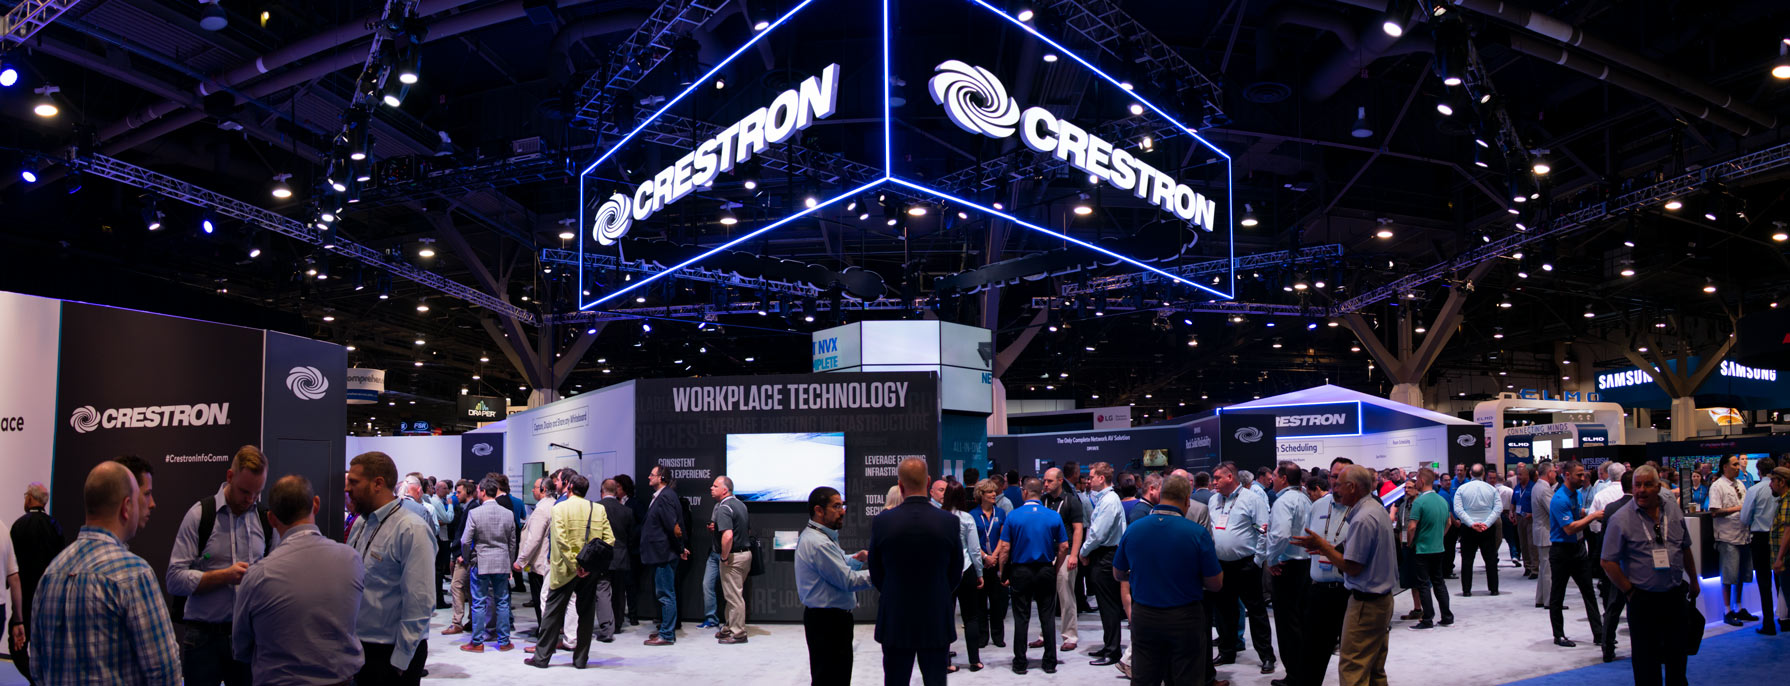 Crestron Stand at InfoComm 2018